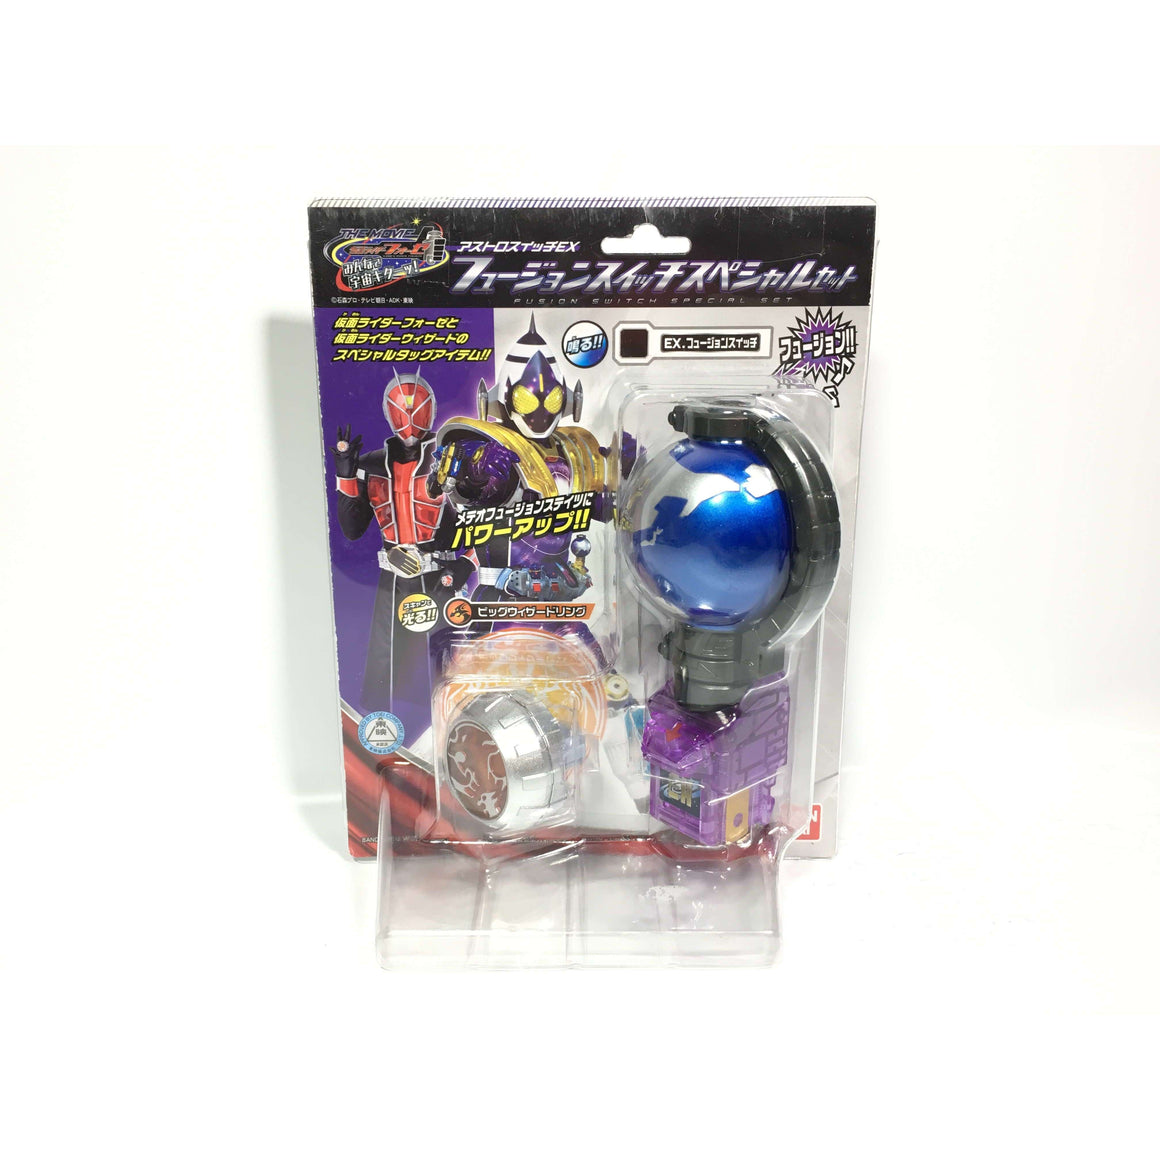 CSTOYS INTERNATIONAL:[BOXED] Kamen Rider Fourze: Astro Switch EX Fusion Switch Special Set